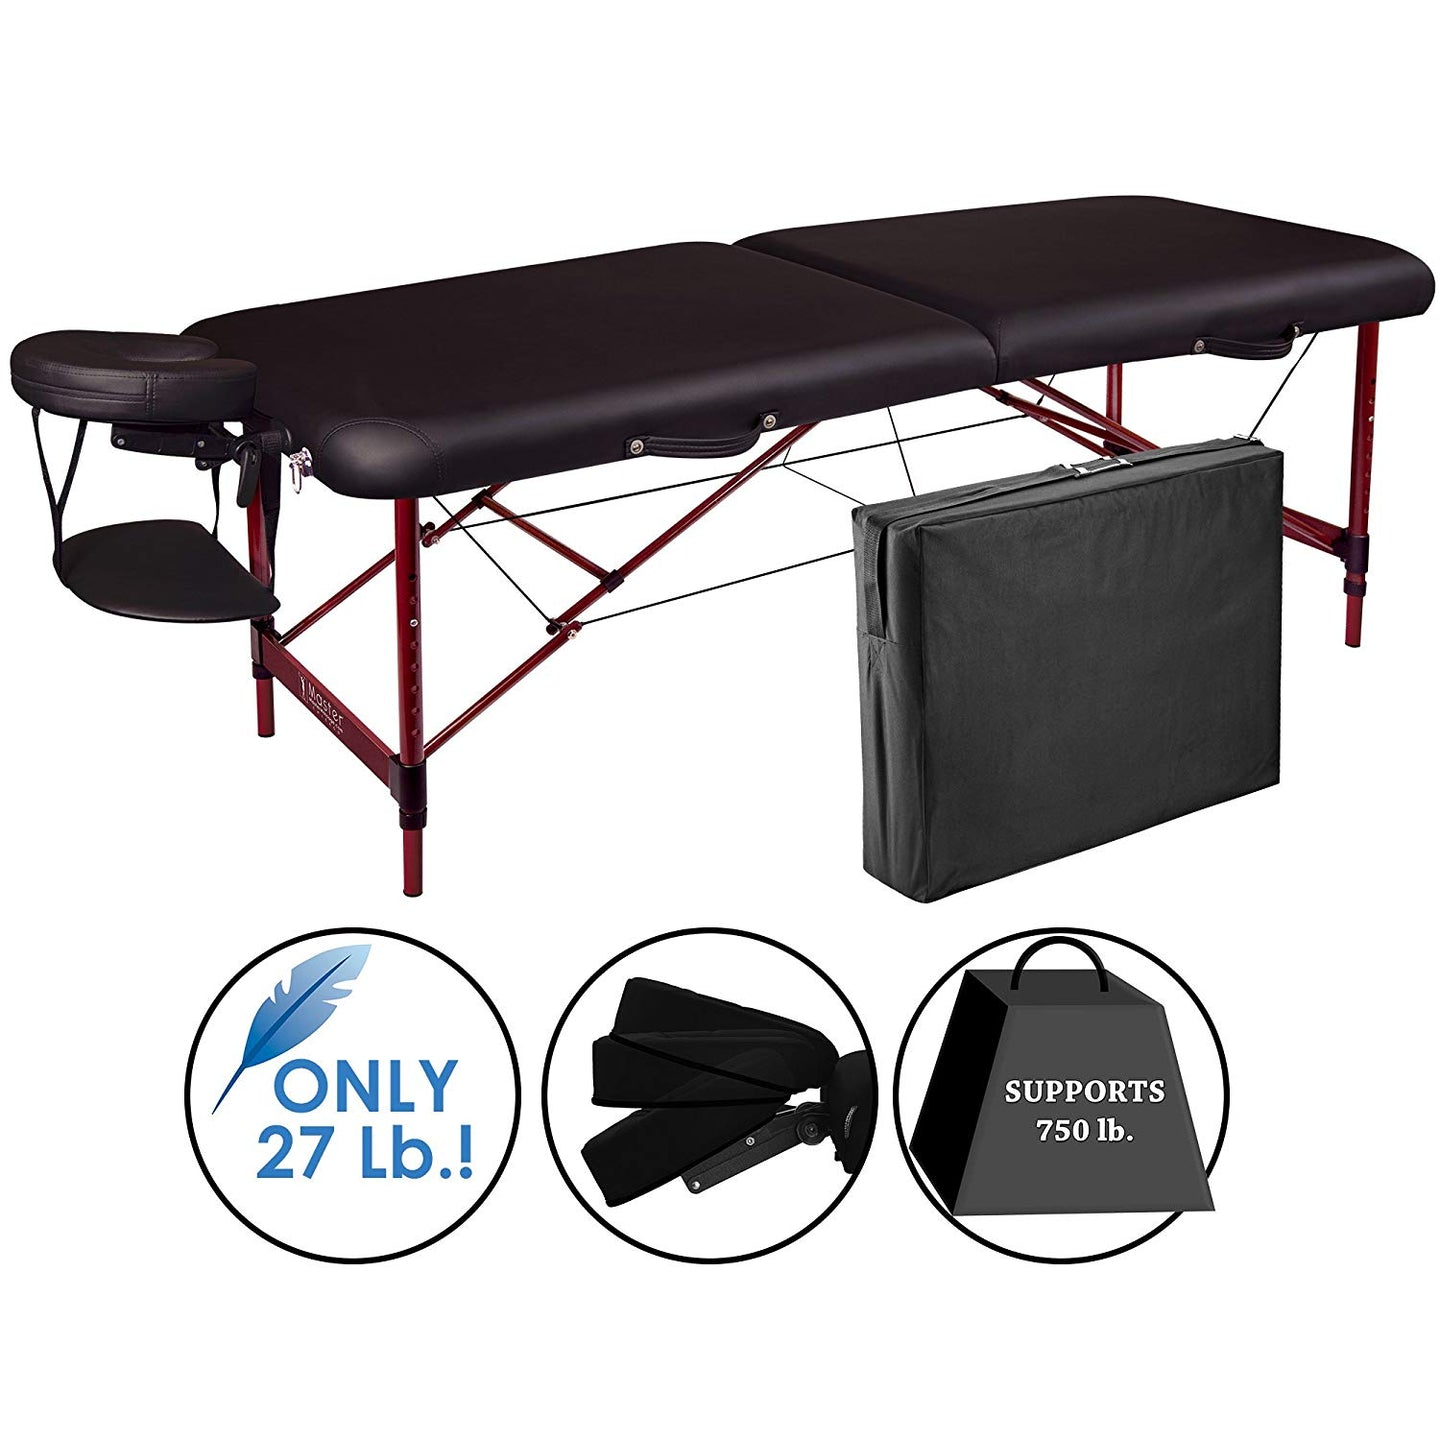 MASSAGE BED RENTAL